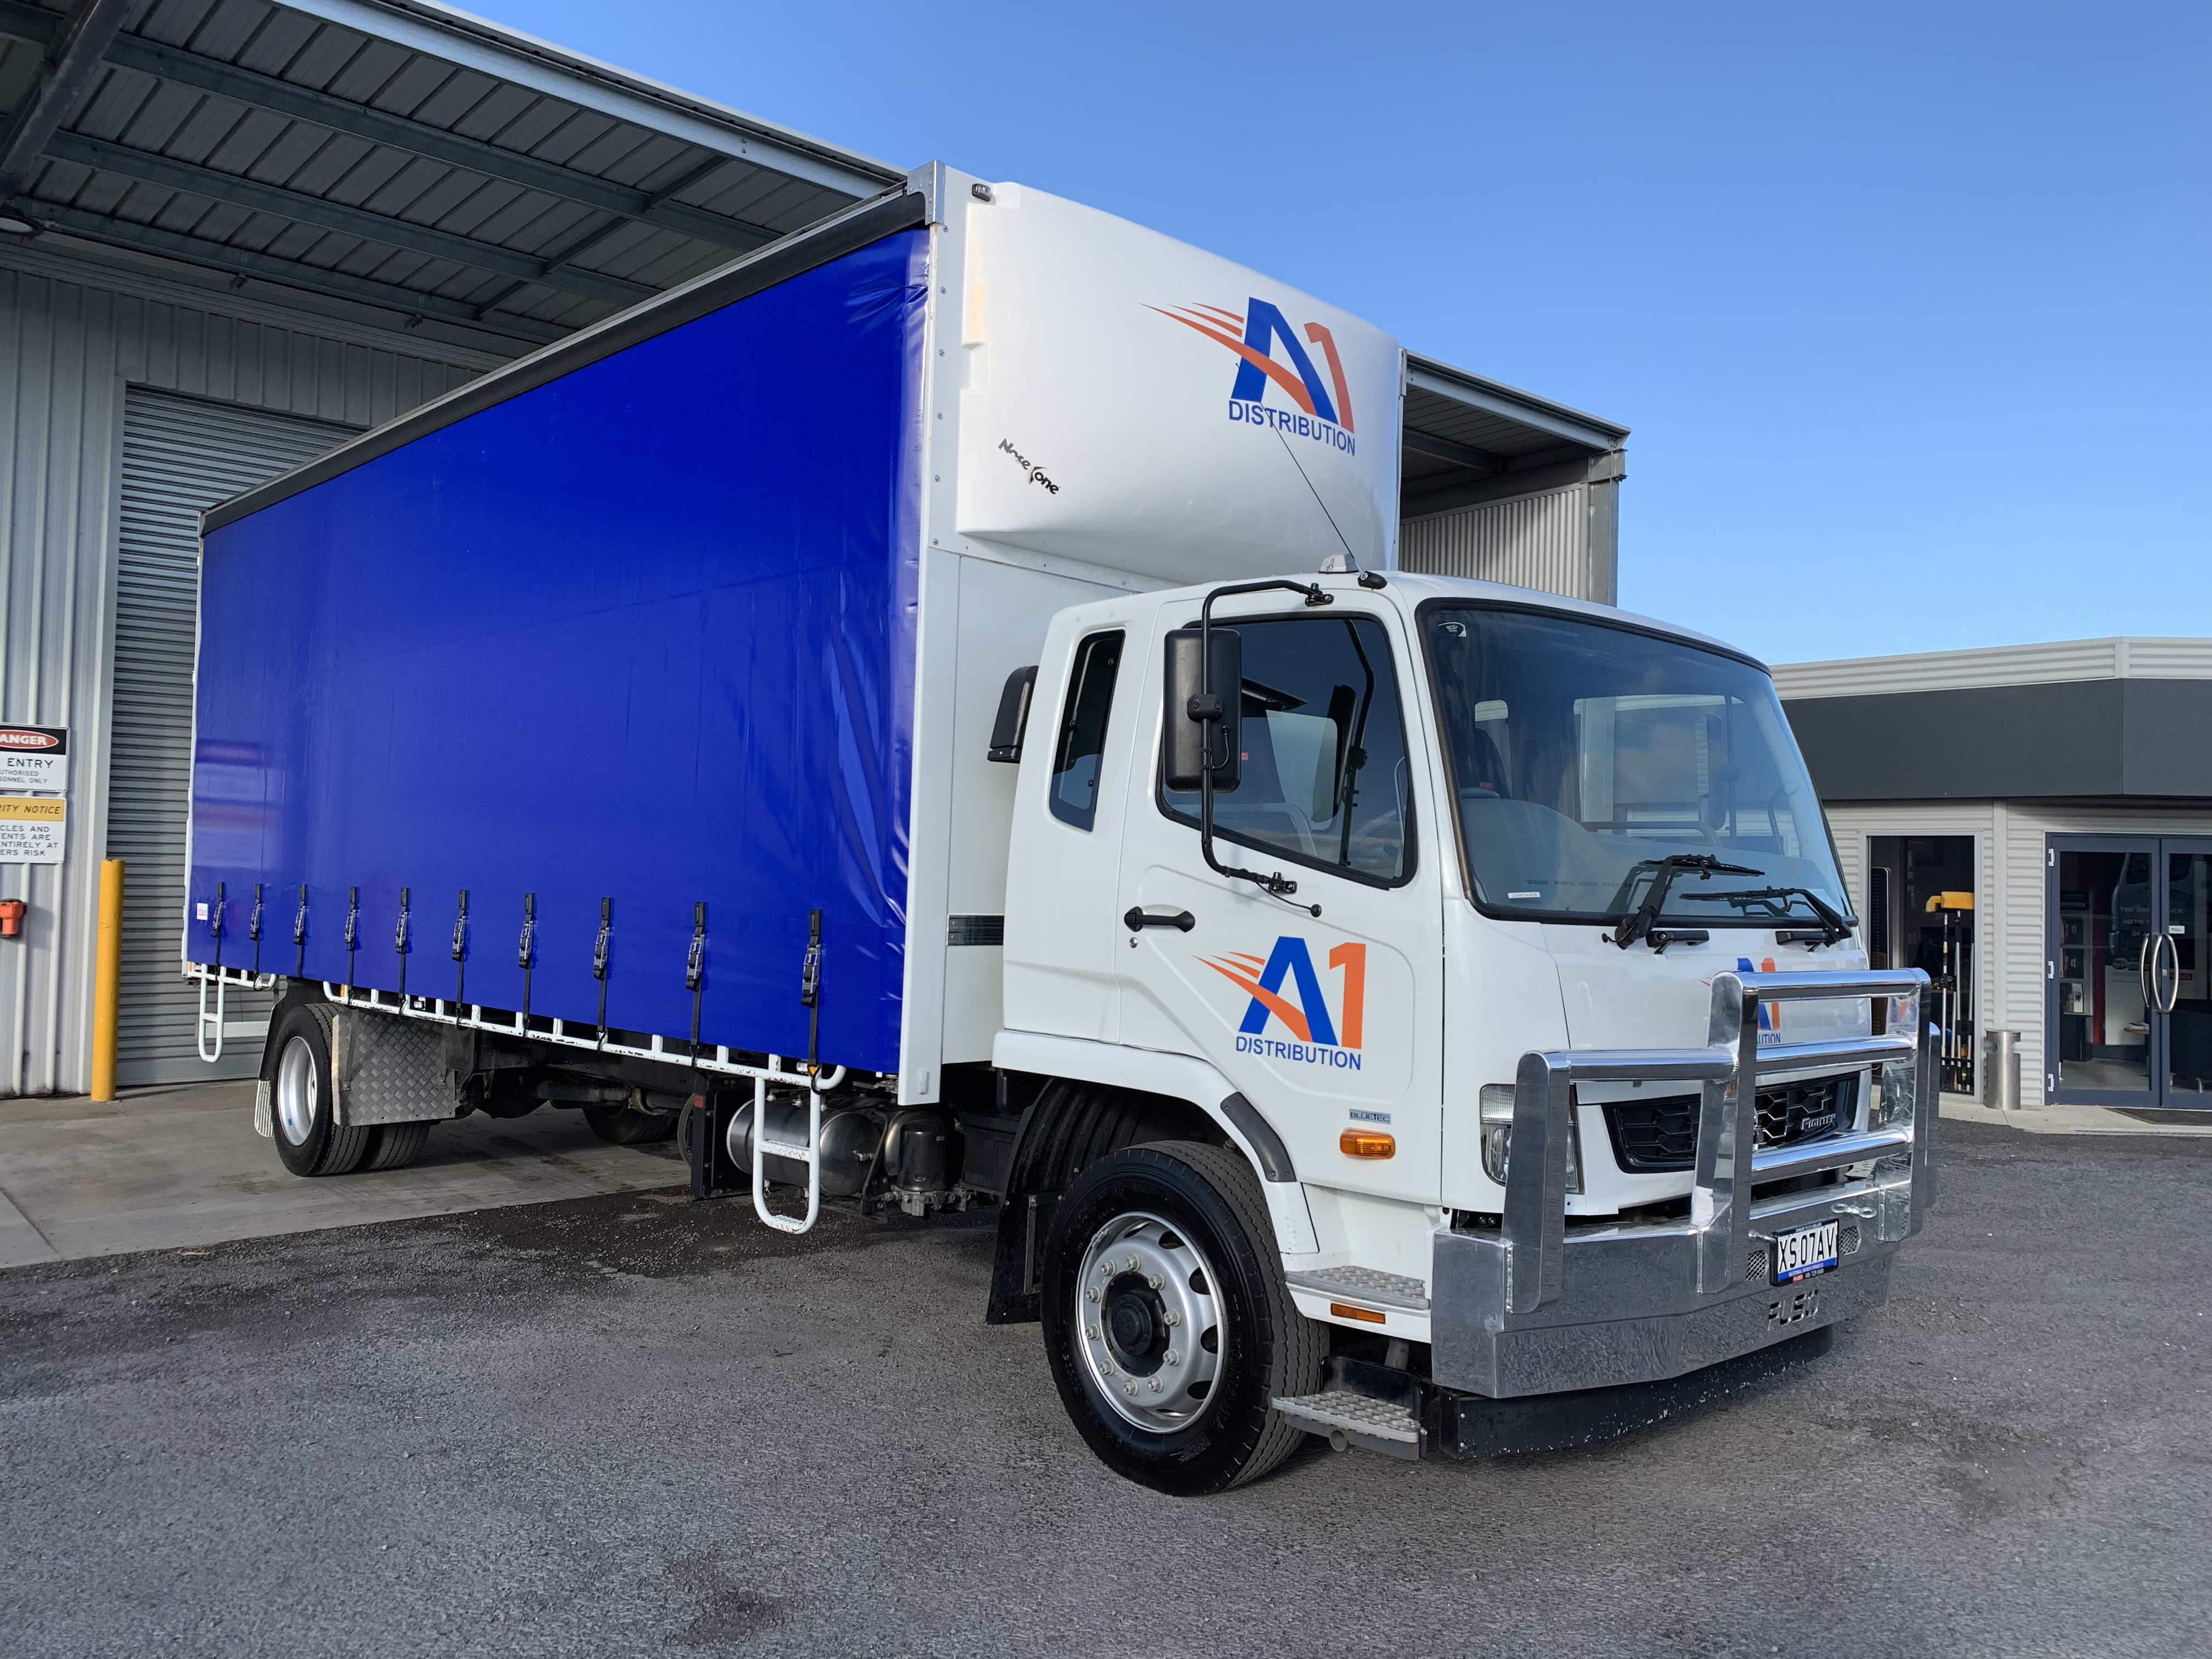 A1 Distribution Truck Signage